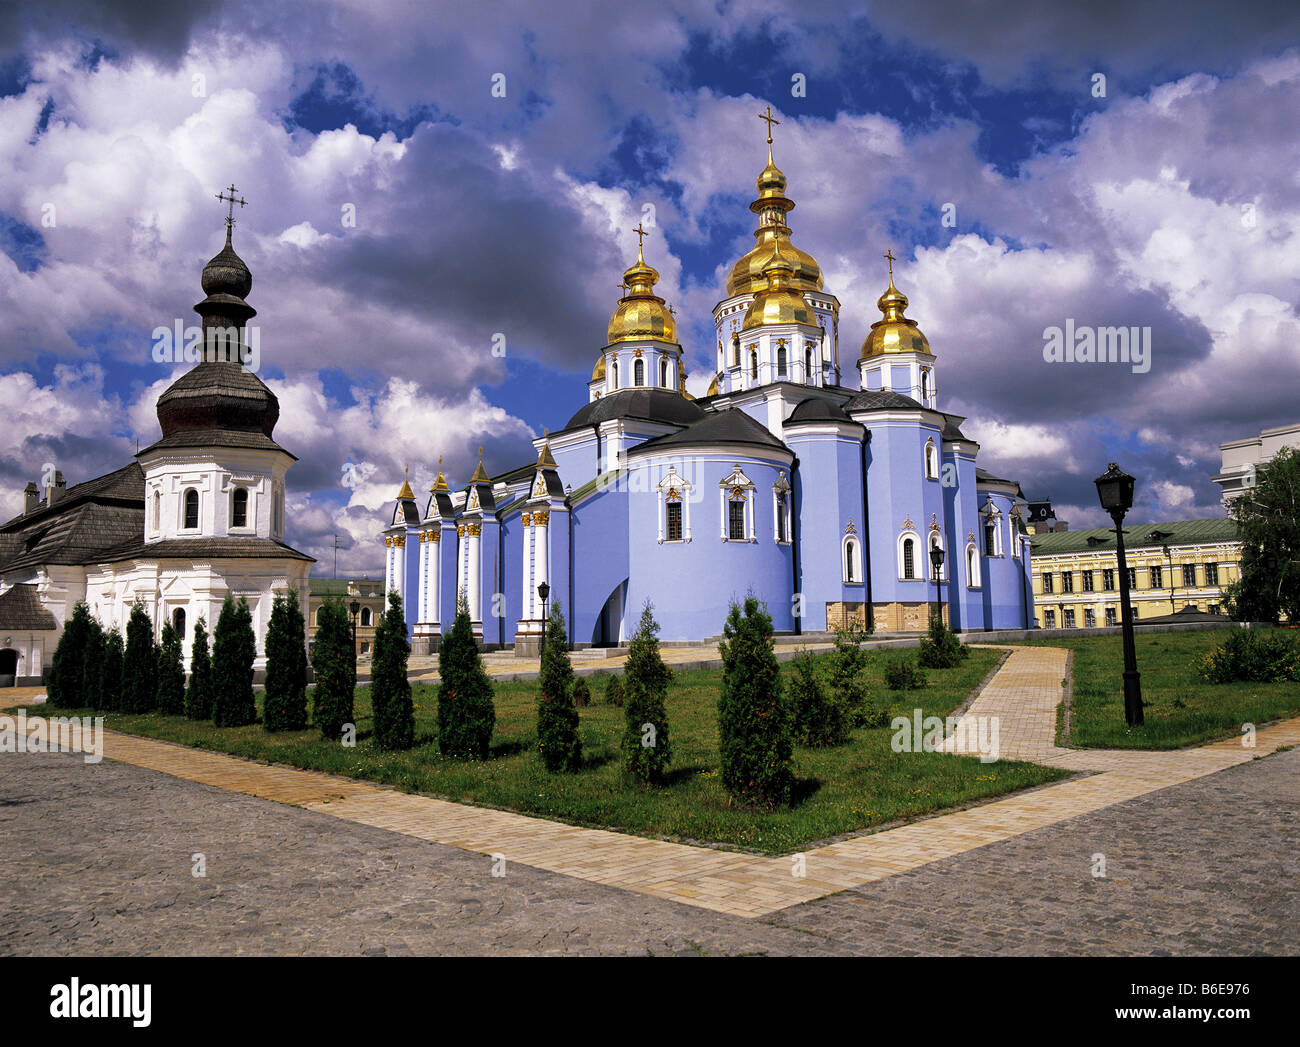 Saint Mikhayil's Monastery of the Golden Domes at Kiev in Ukraine - Stock Image